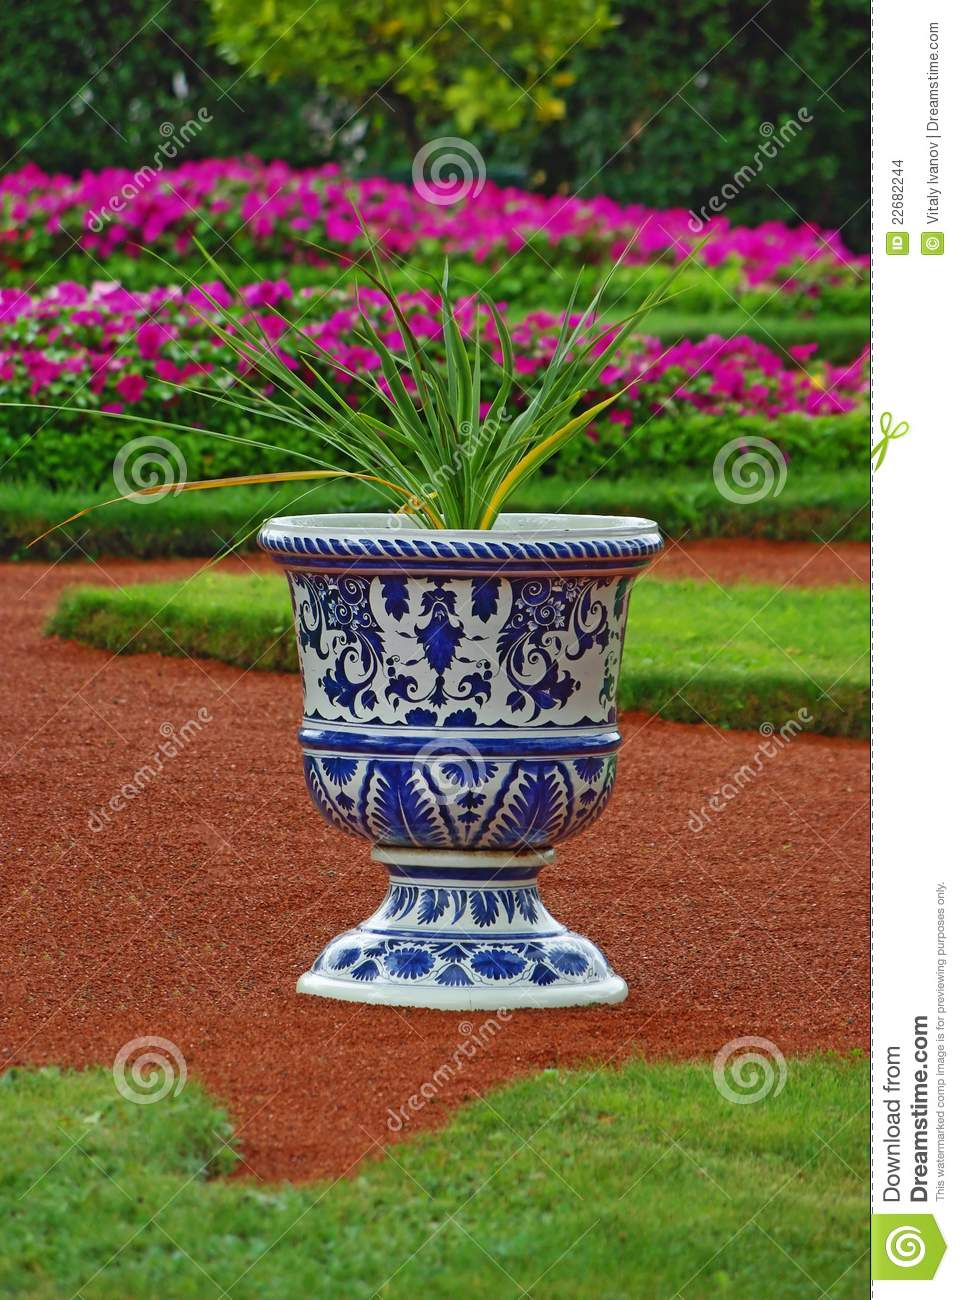 Vase with flower as an element of landscape design stock for Element landscape design